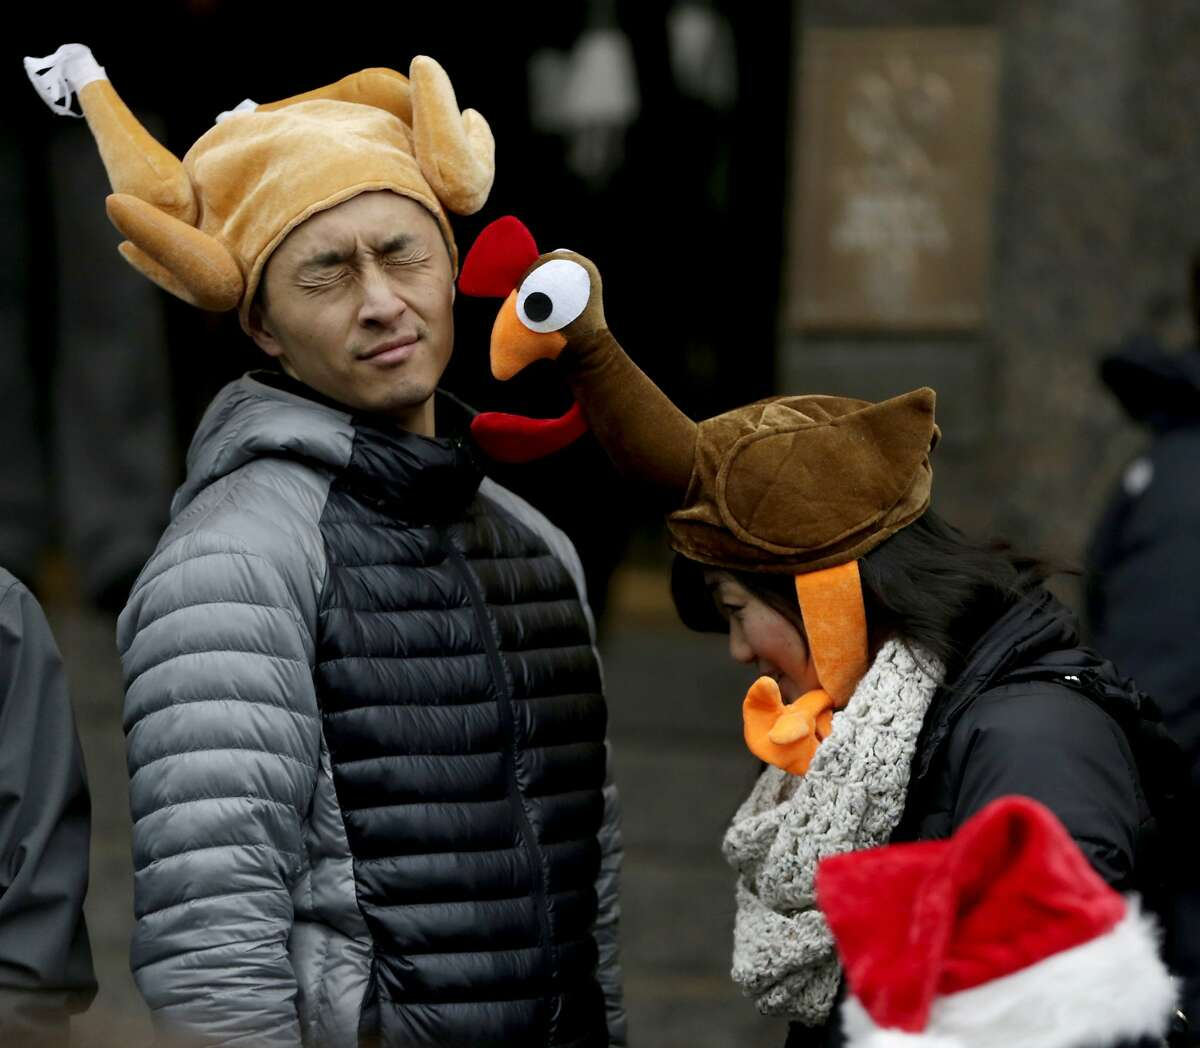 Tamari Hedani, right, hits her boyfriend, Chris Chu, both from San Francisco, with her turkey hat prior to the start of the Macy's Thanksgiving Day Parade, Thursday, Nov. 27, 2014, in New York.